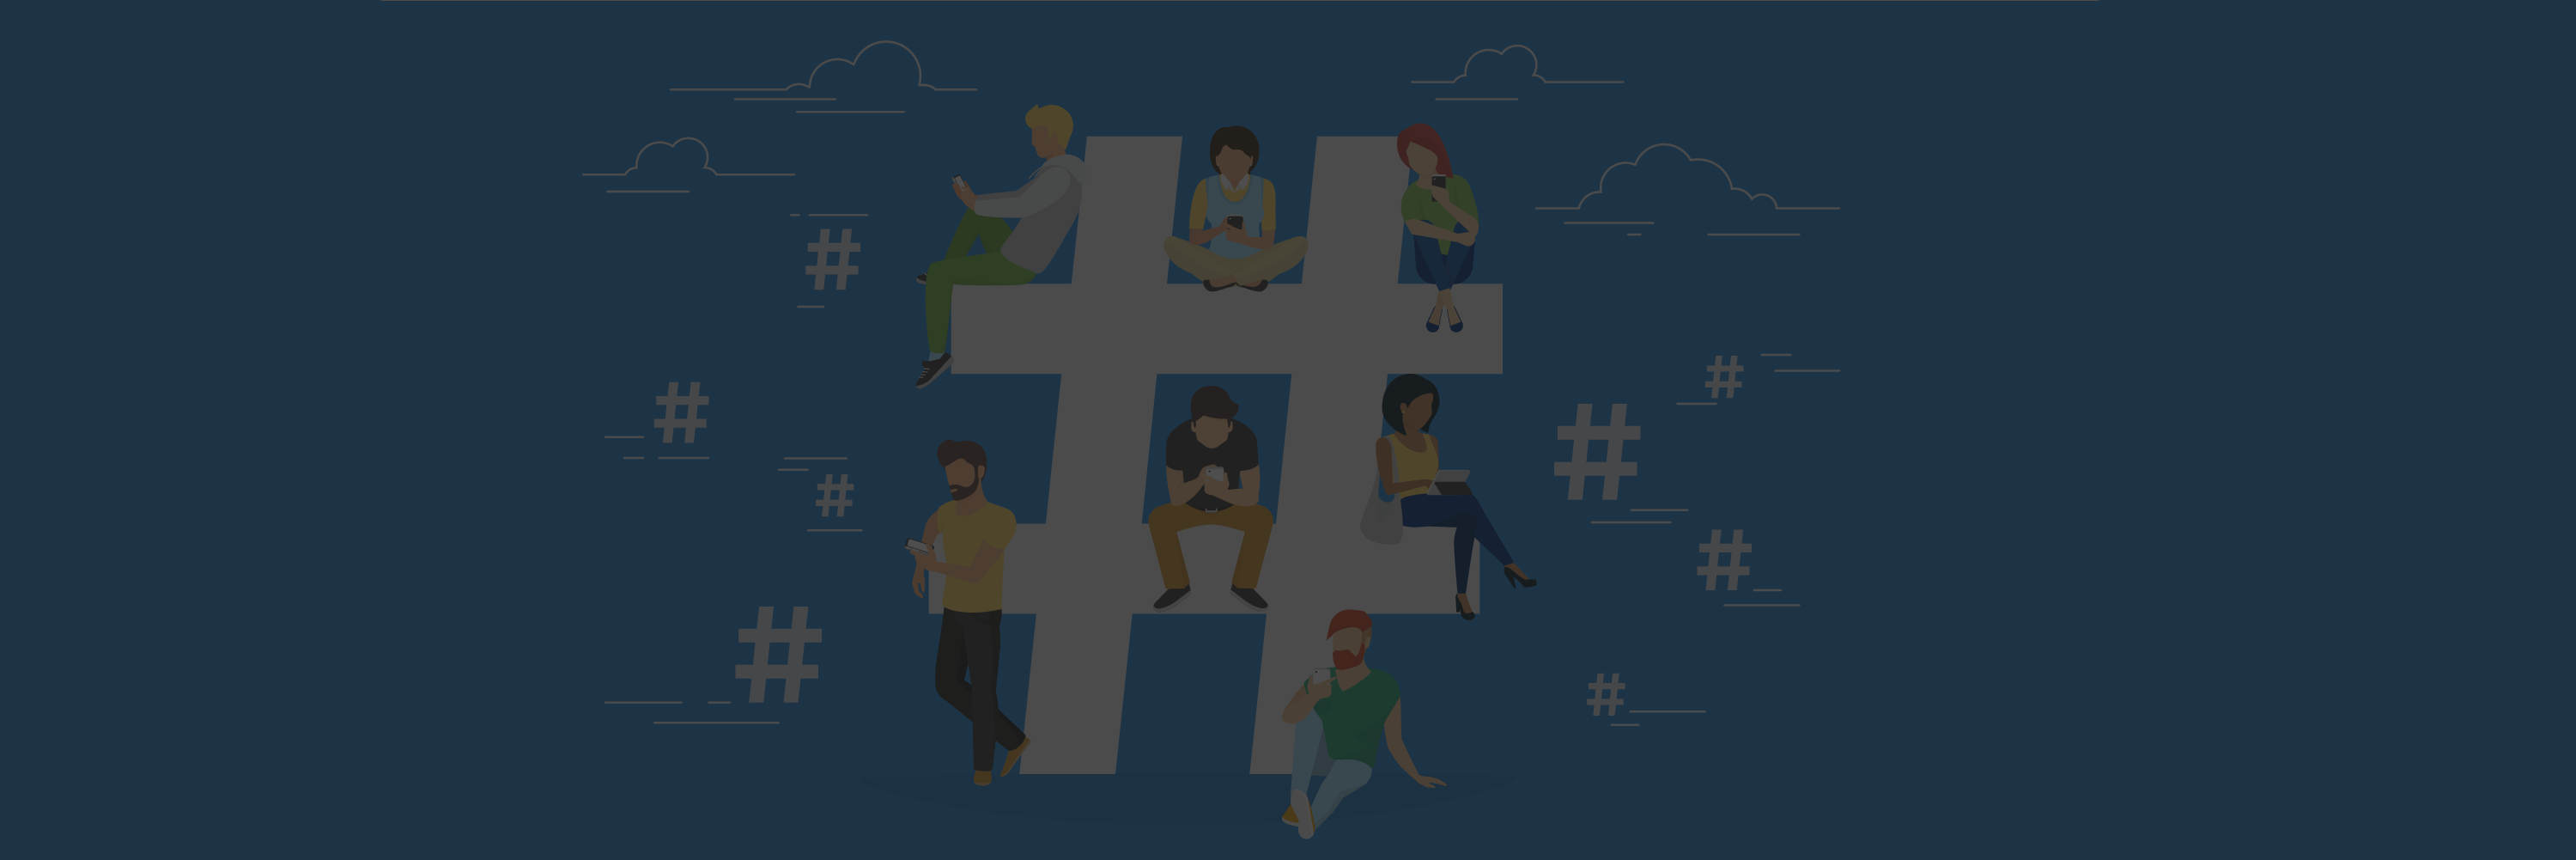 The marketer's guide to Twitter trending hashtags